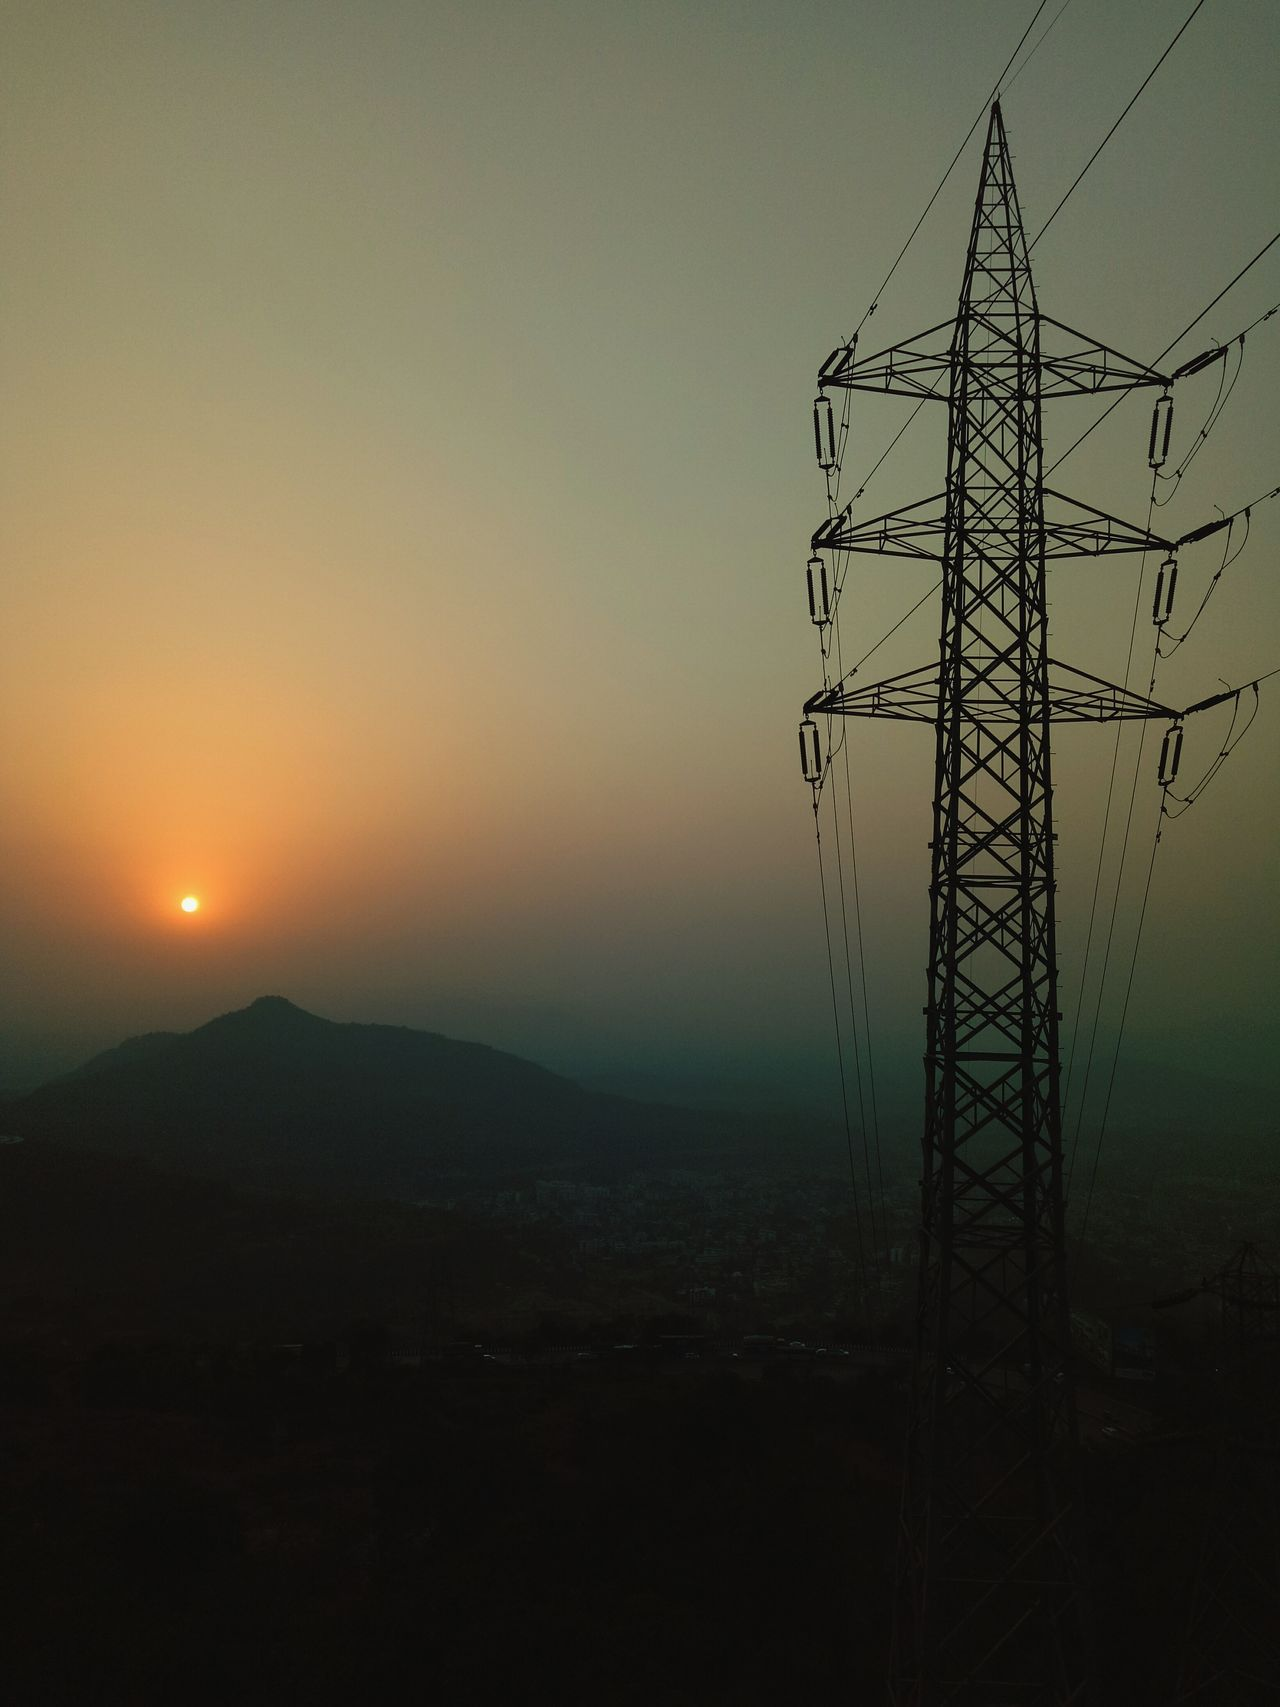 Cable Fog Electricity  Silhouette Sunset Electricity Pylon No People Tranquility Technology Sky Dawn Landscape Outdoors Tree Nature Telephone Line Day Togetherness Scenics Mountain Beauty In Nature Travel Destinations Tranquil Scene Dark Standing